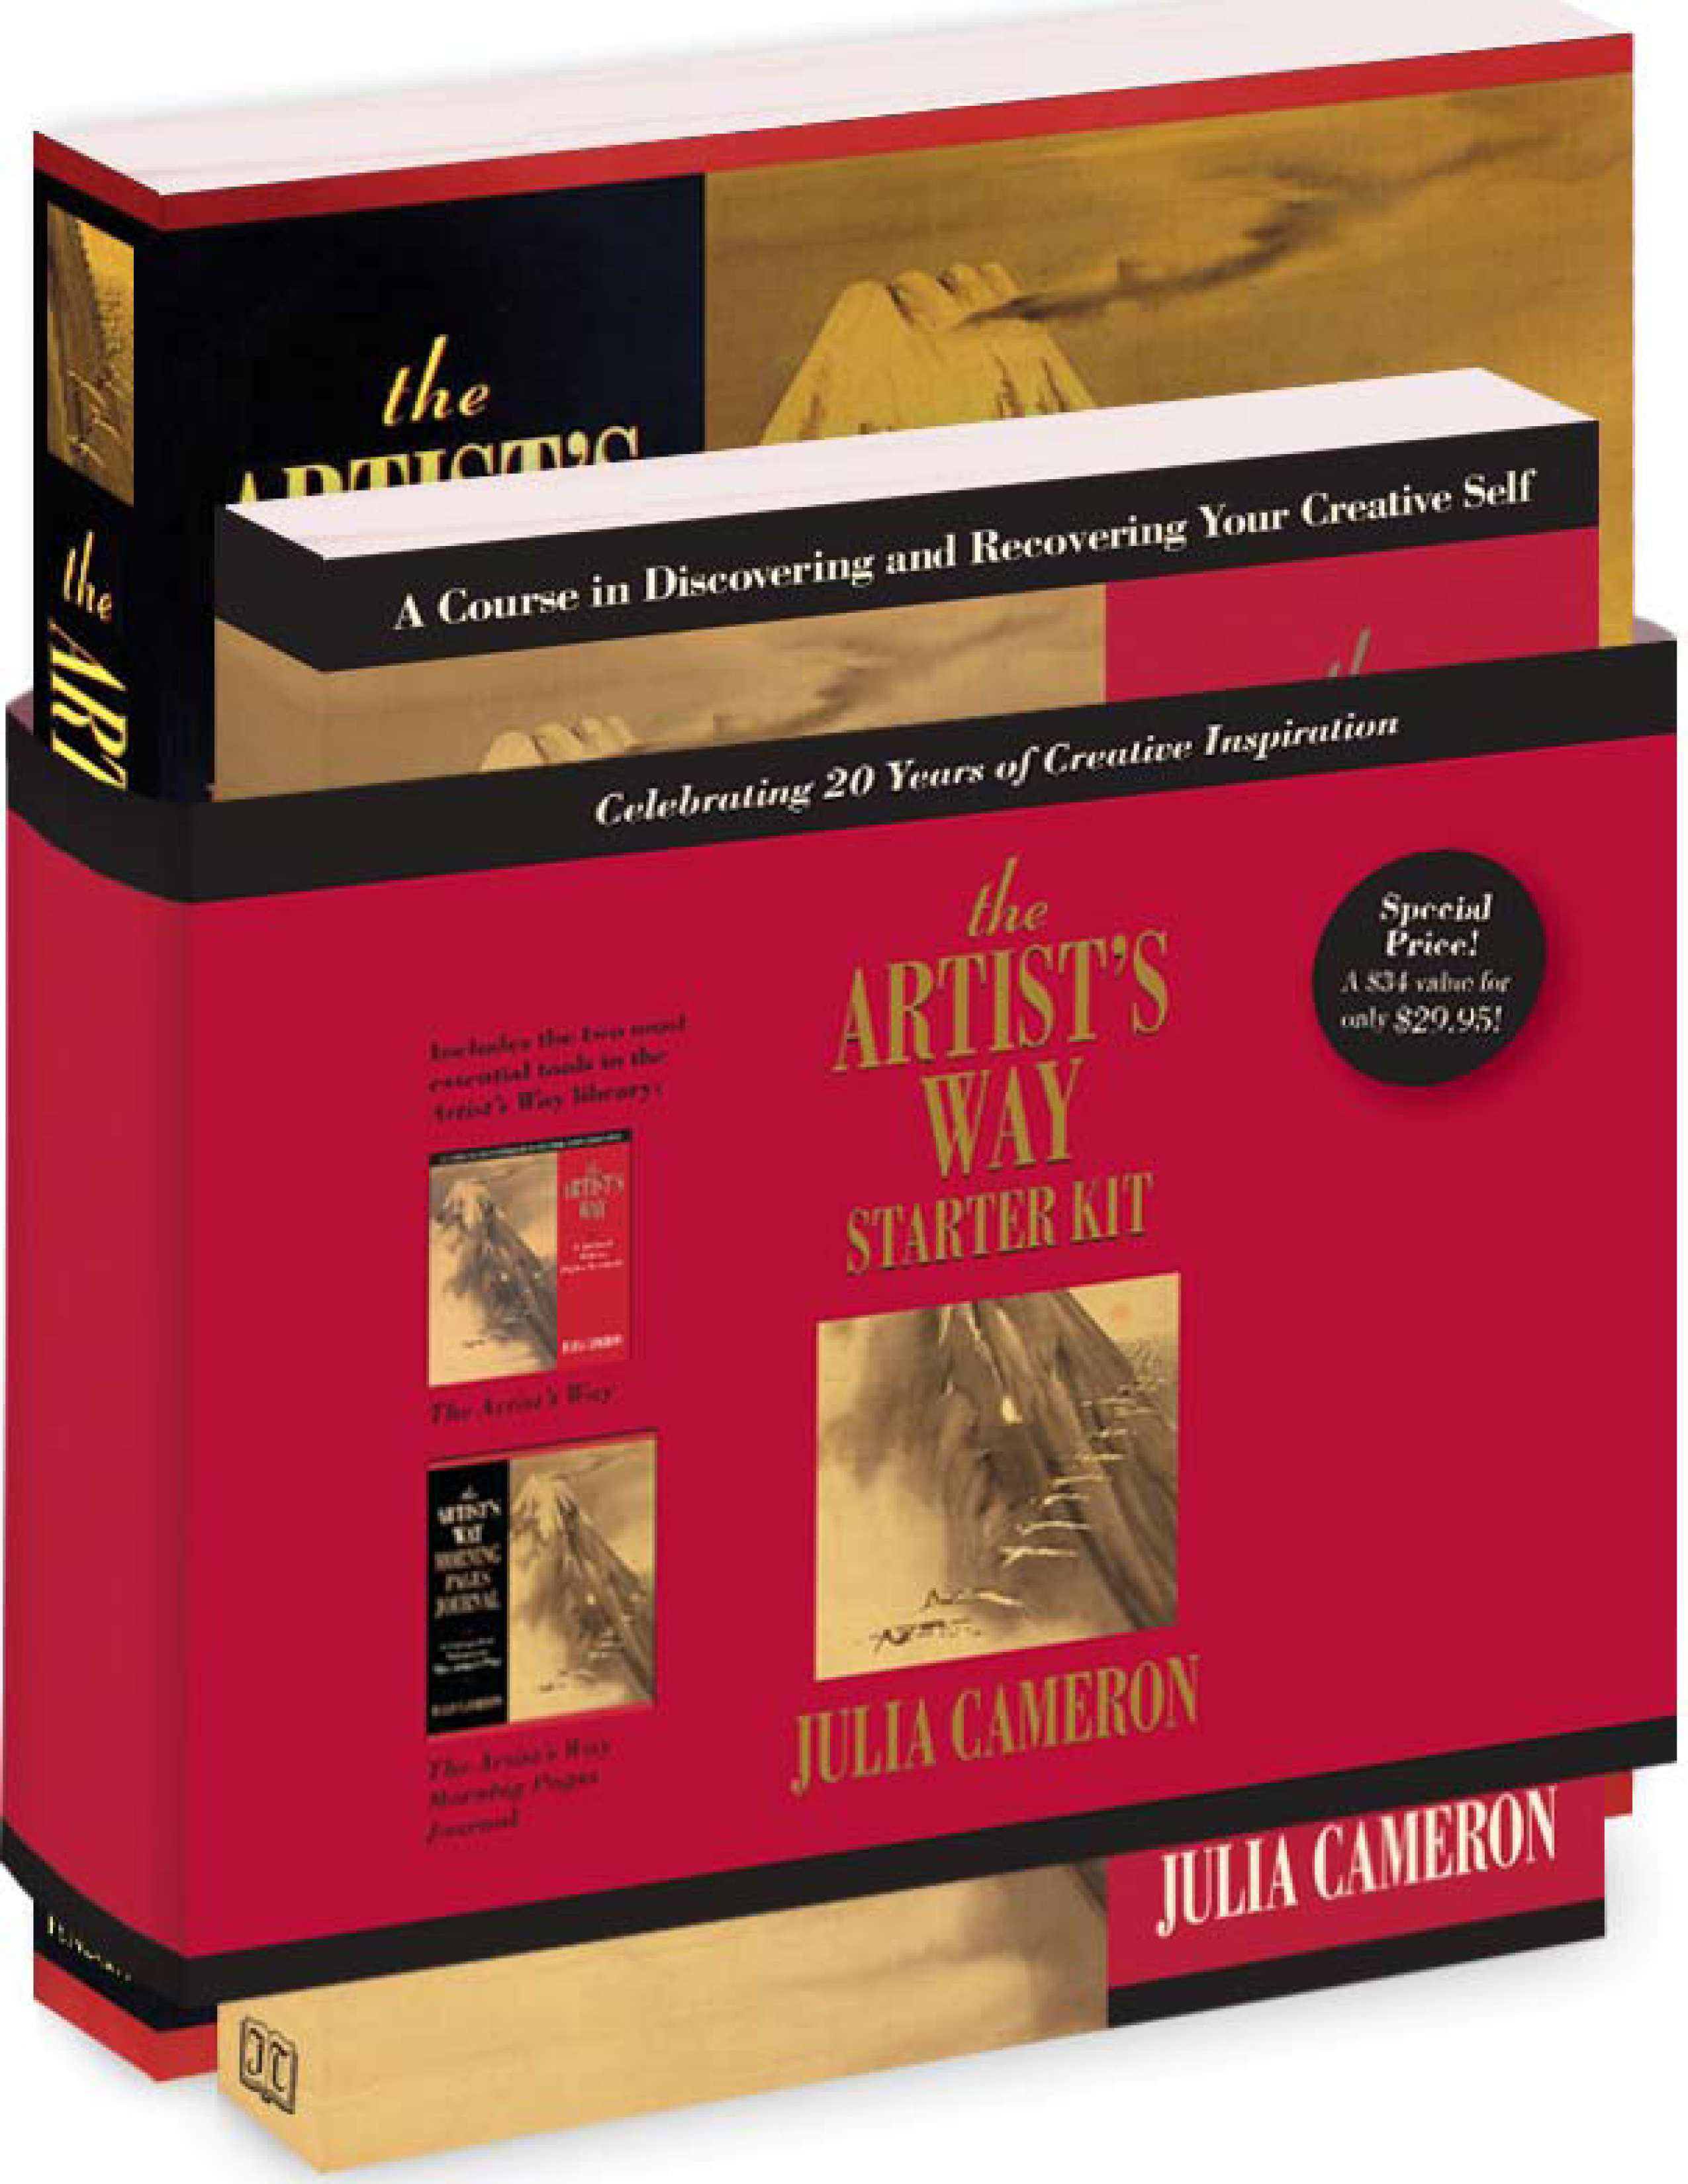 The Artist's Way Starter Kit by Julia Cameron